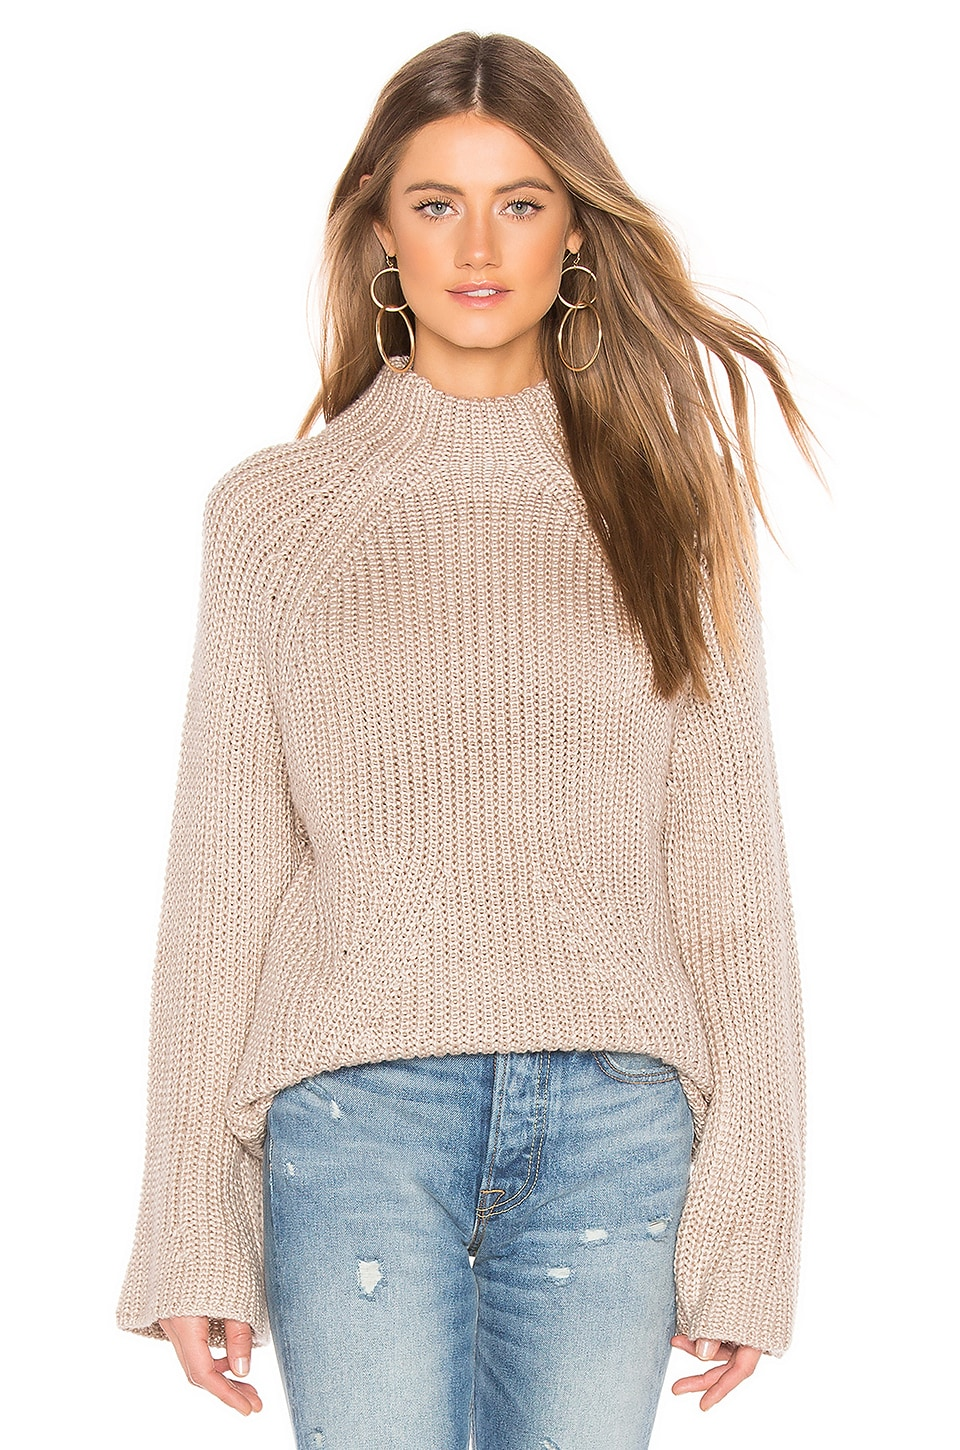 Tularosa Raena Sweater in Taupe